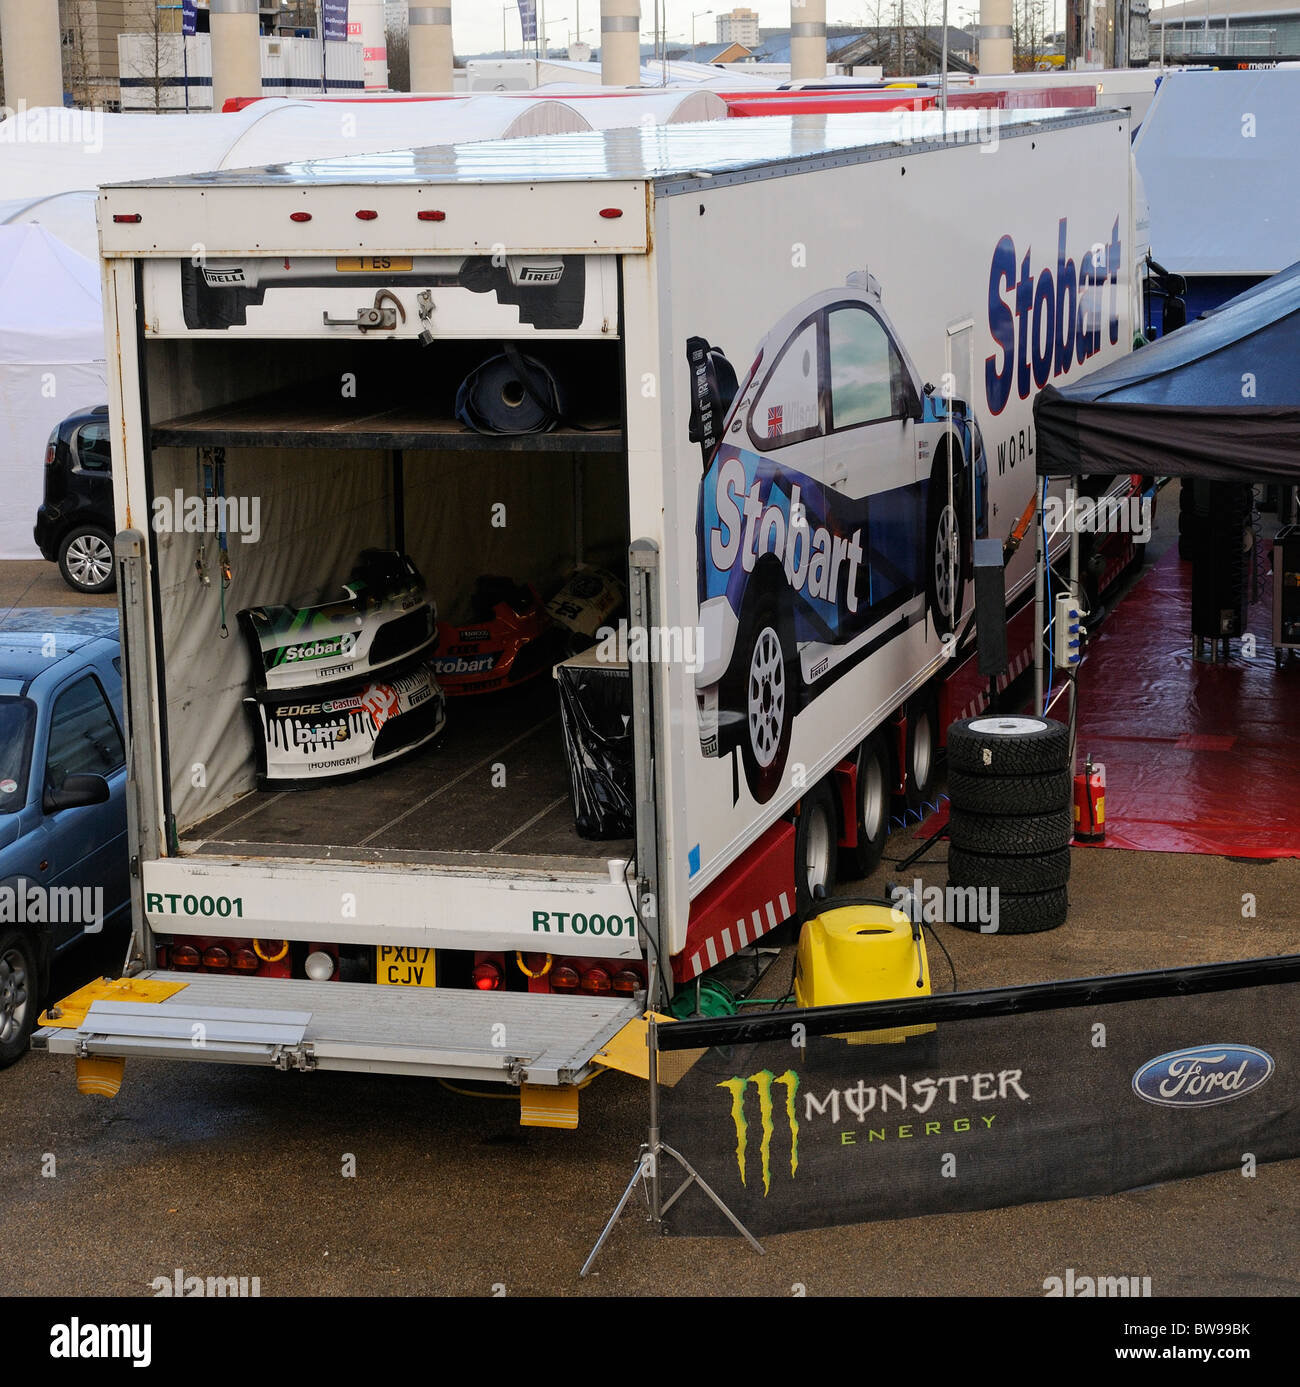 Stobart motor sport truck with car parts stored inside - Stock Image